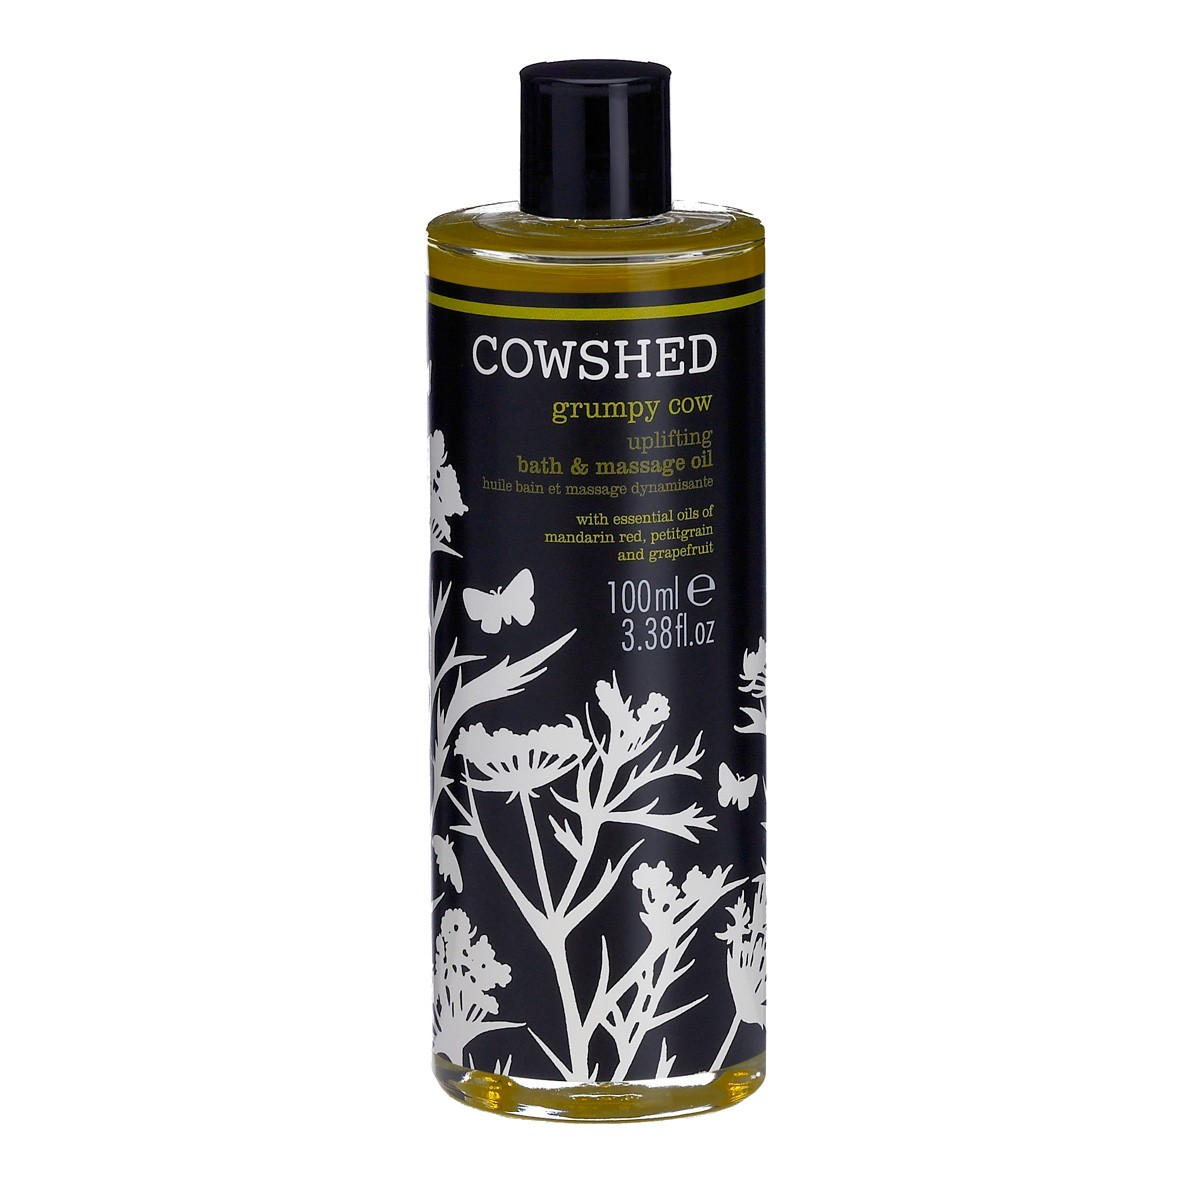 Cowshed Grumpy Cow Uplifting Bath & Massage Oil